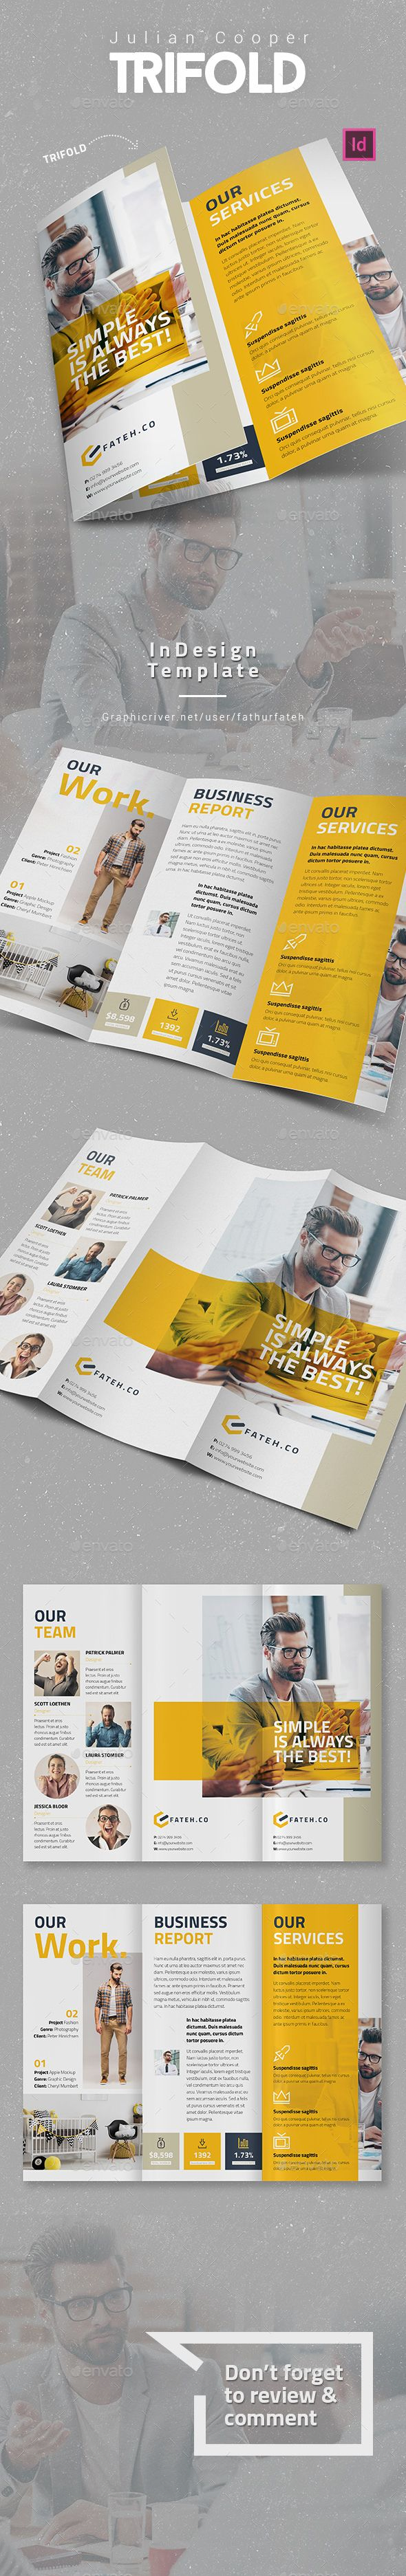 Julian Cooper Trifold | Indesign templates, Brochures and Template